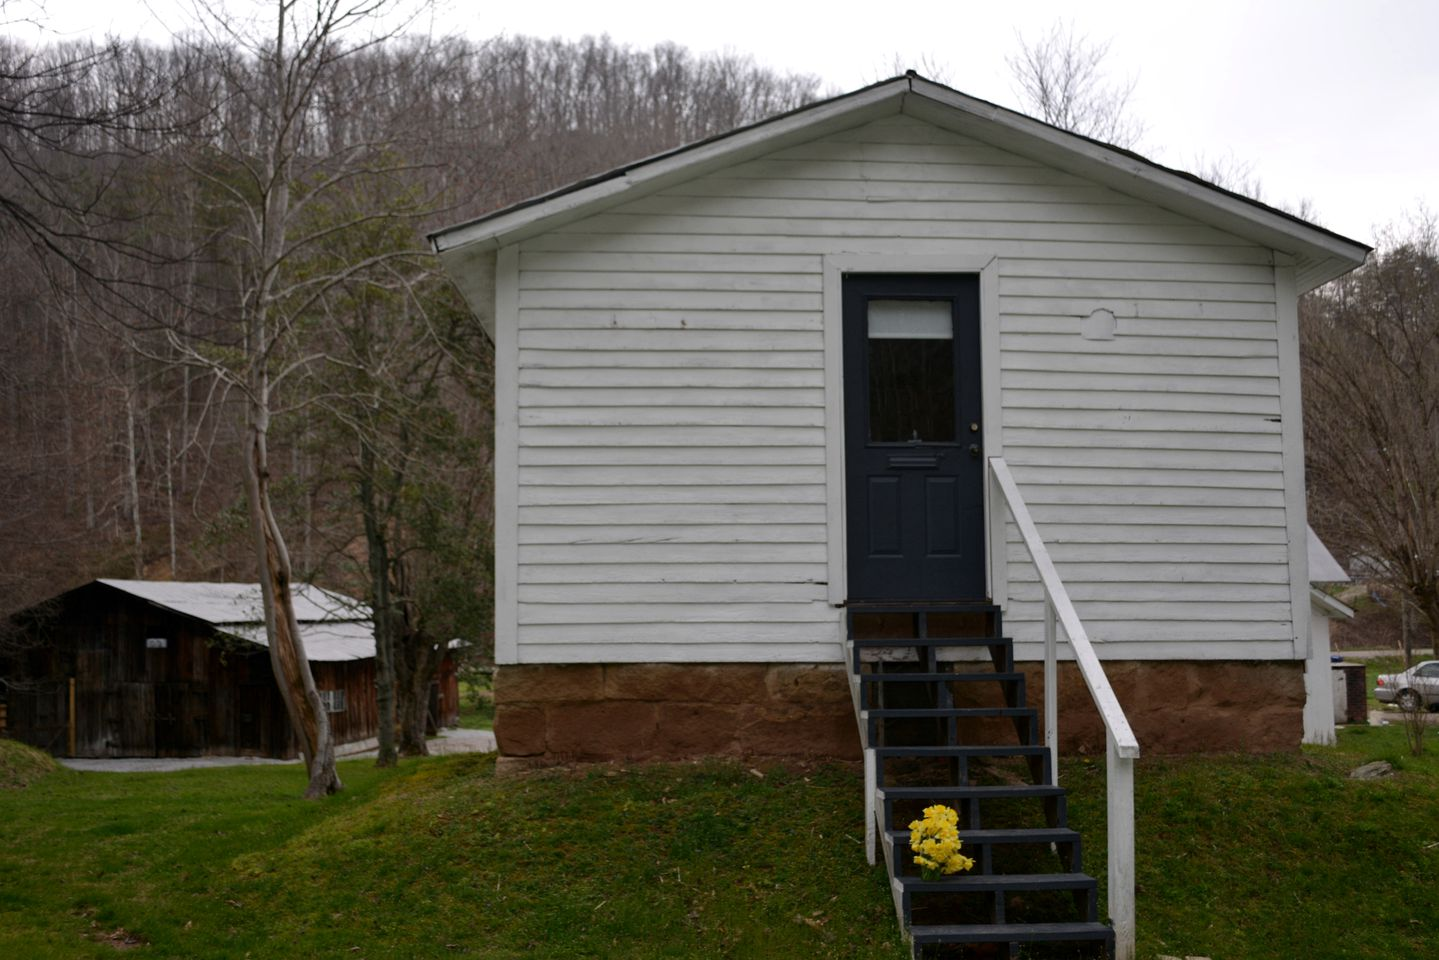 Cabins (Clendenin, West Virginia, United States)